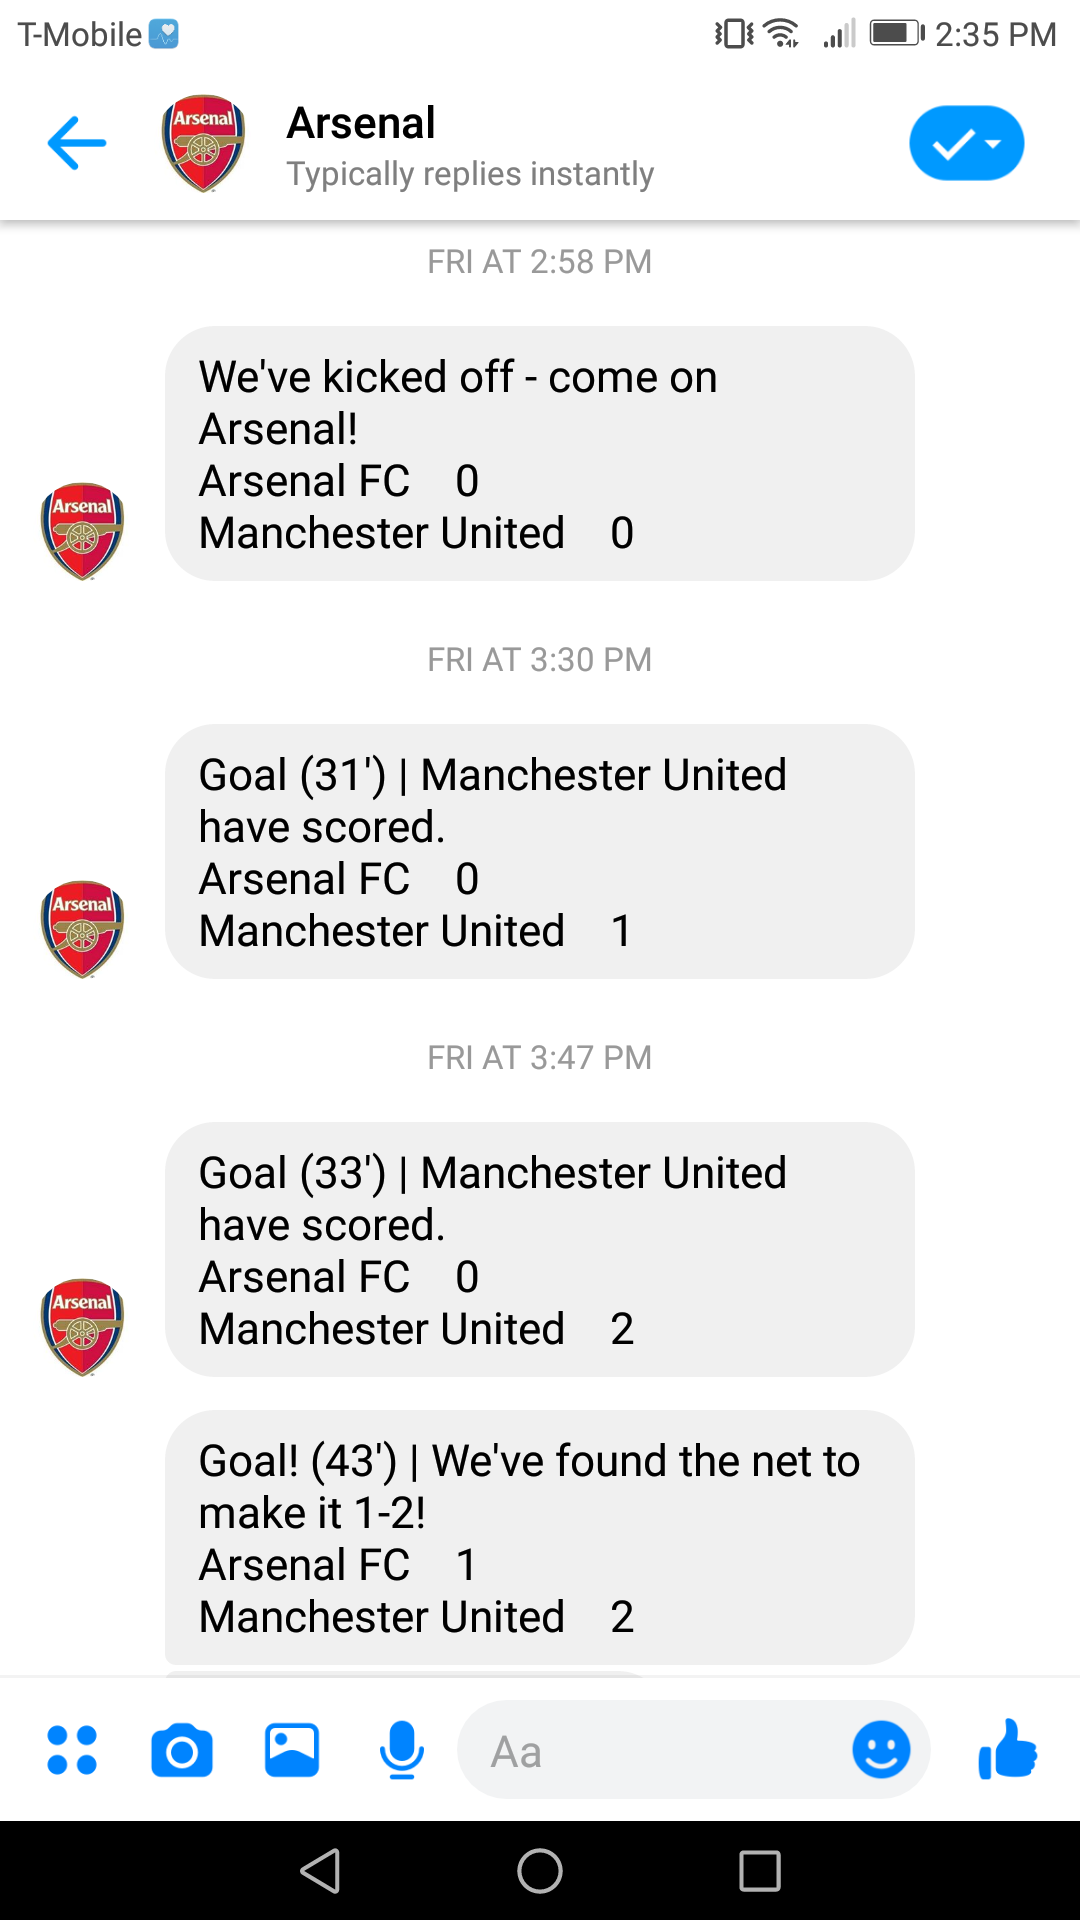 Arsenal's bot provides live updates